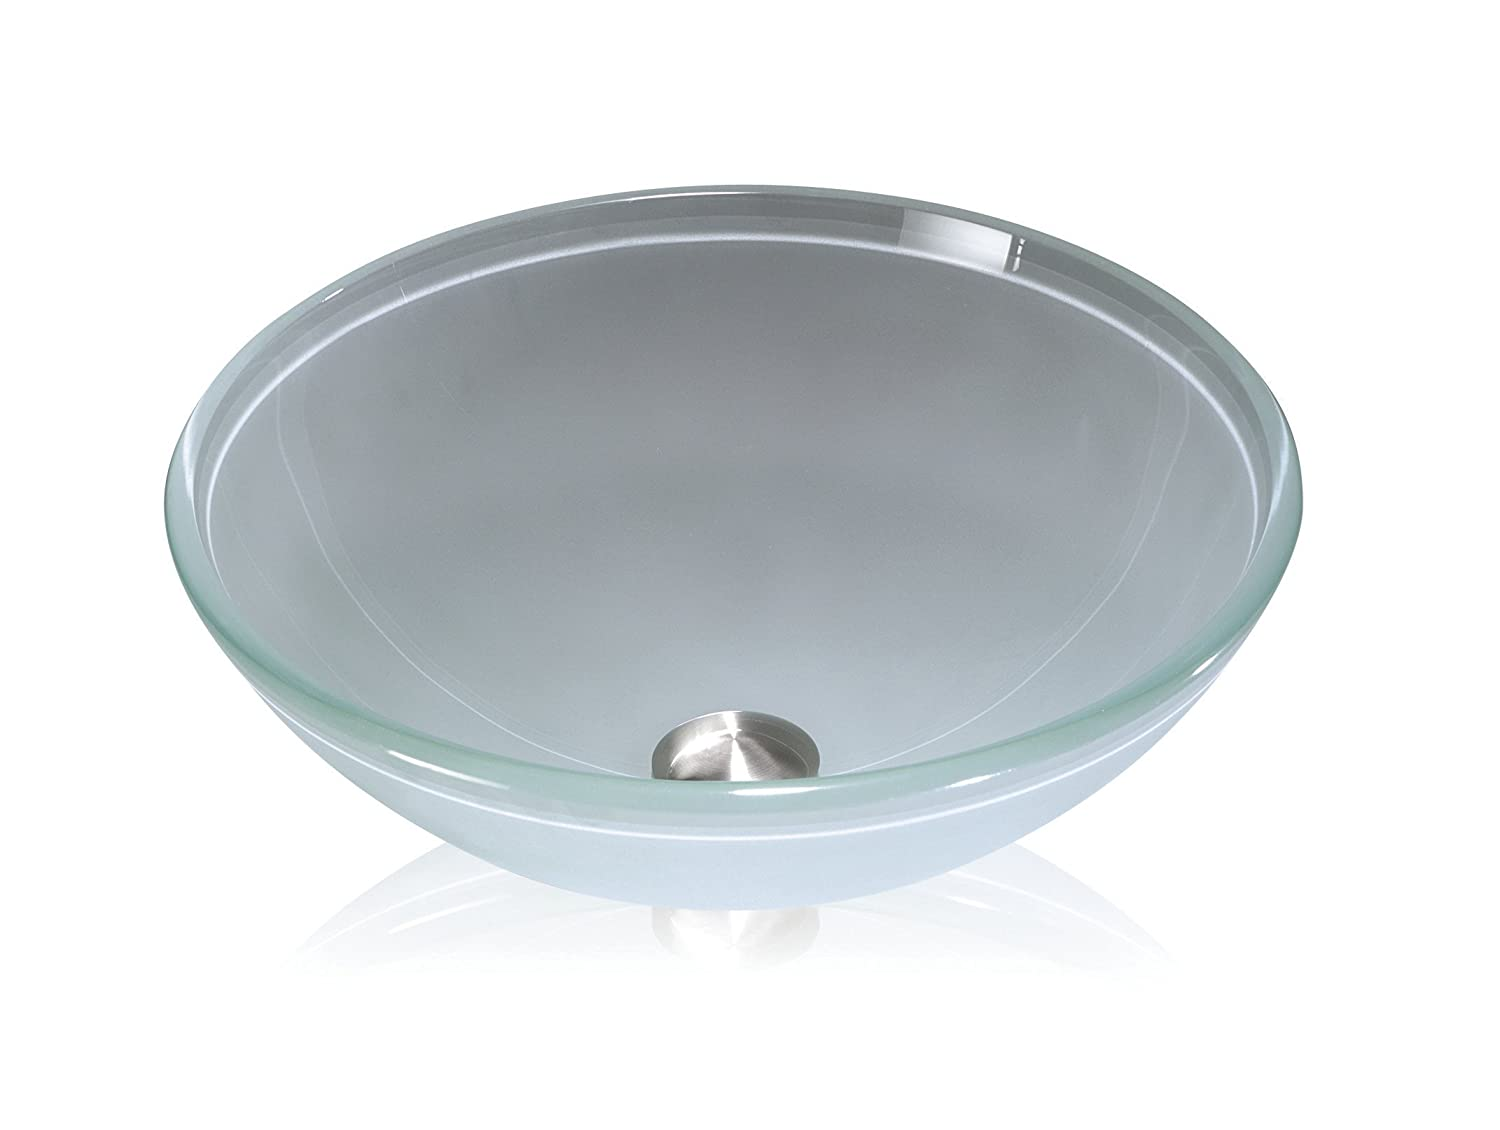 Lenova Gv 11 Round Glass Vessel Sink Clear Frosted Glass Sink